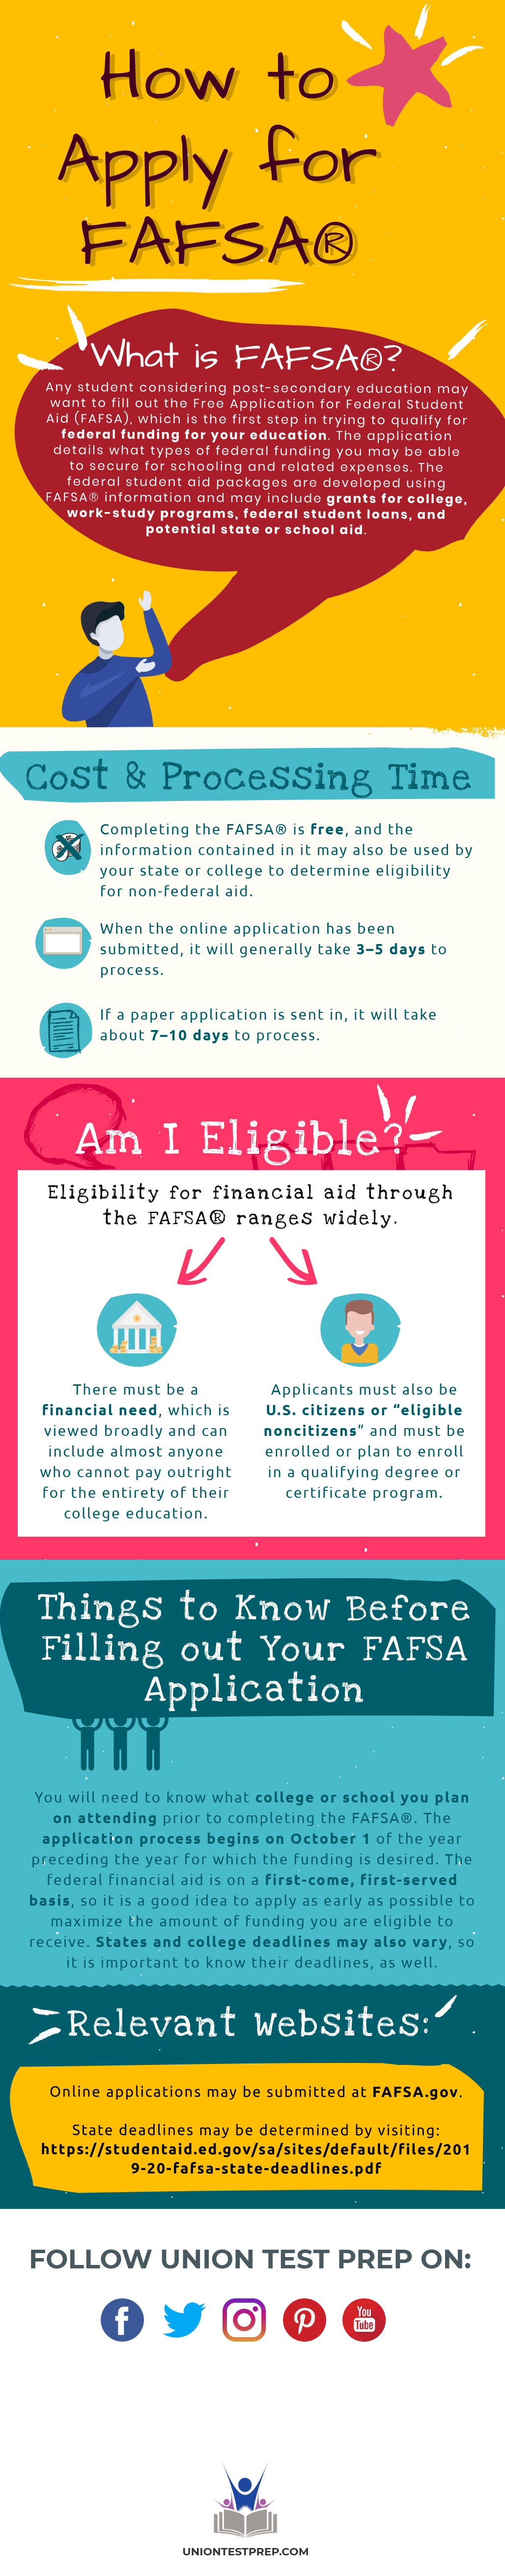 How to Apply for FAFSA®